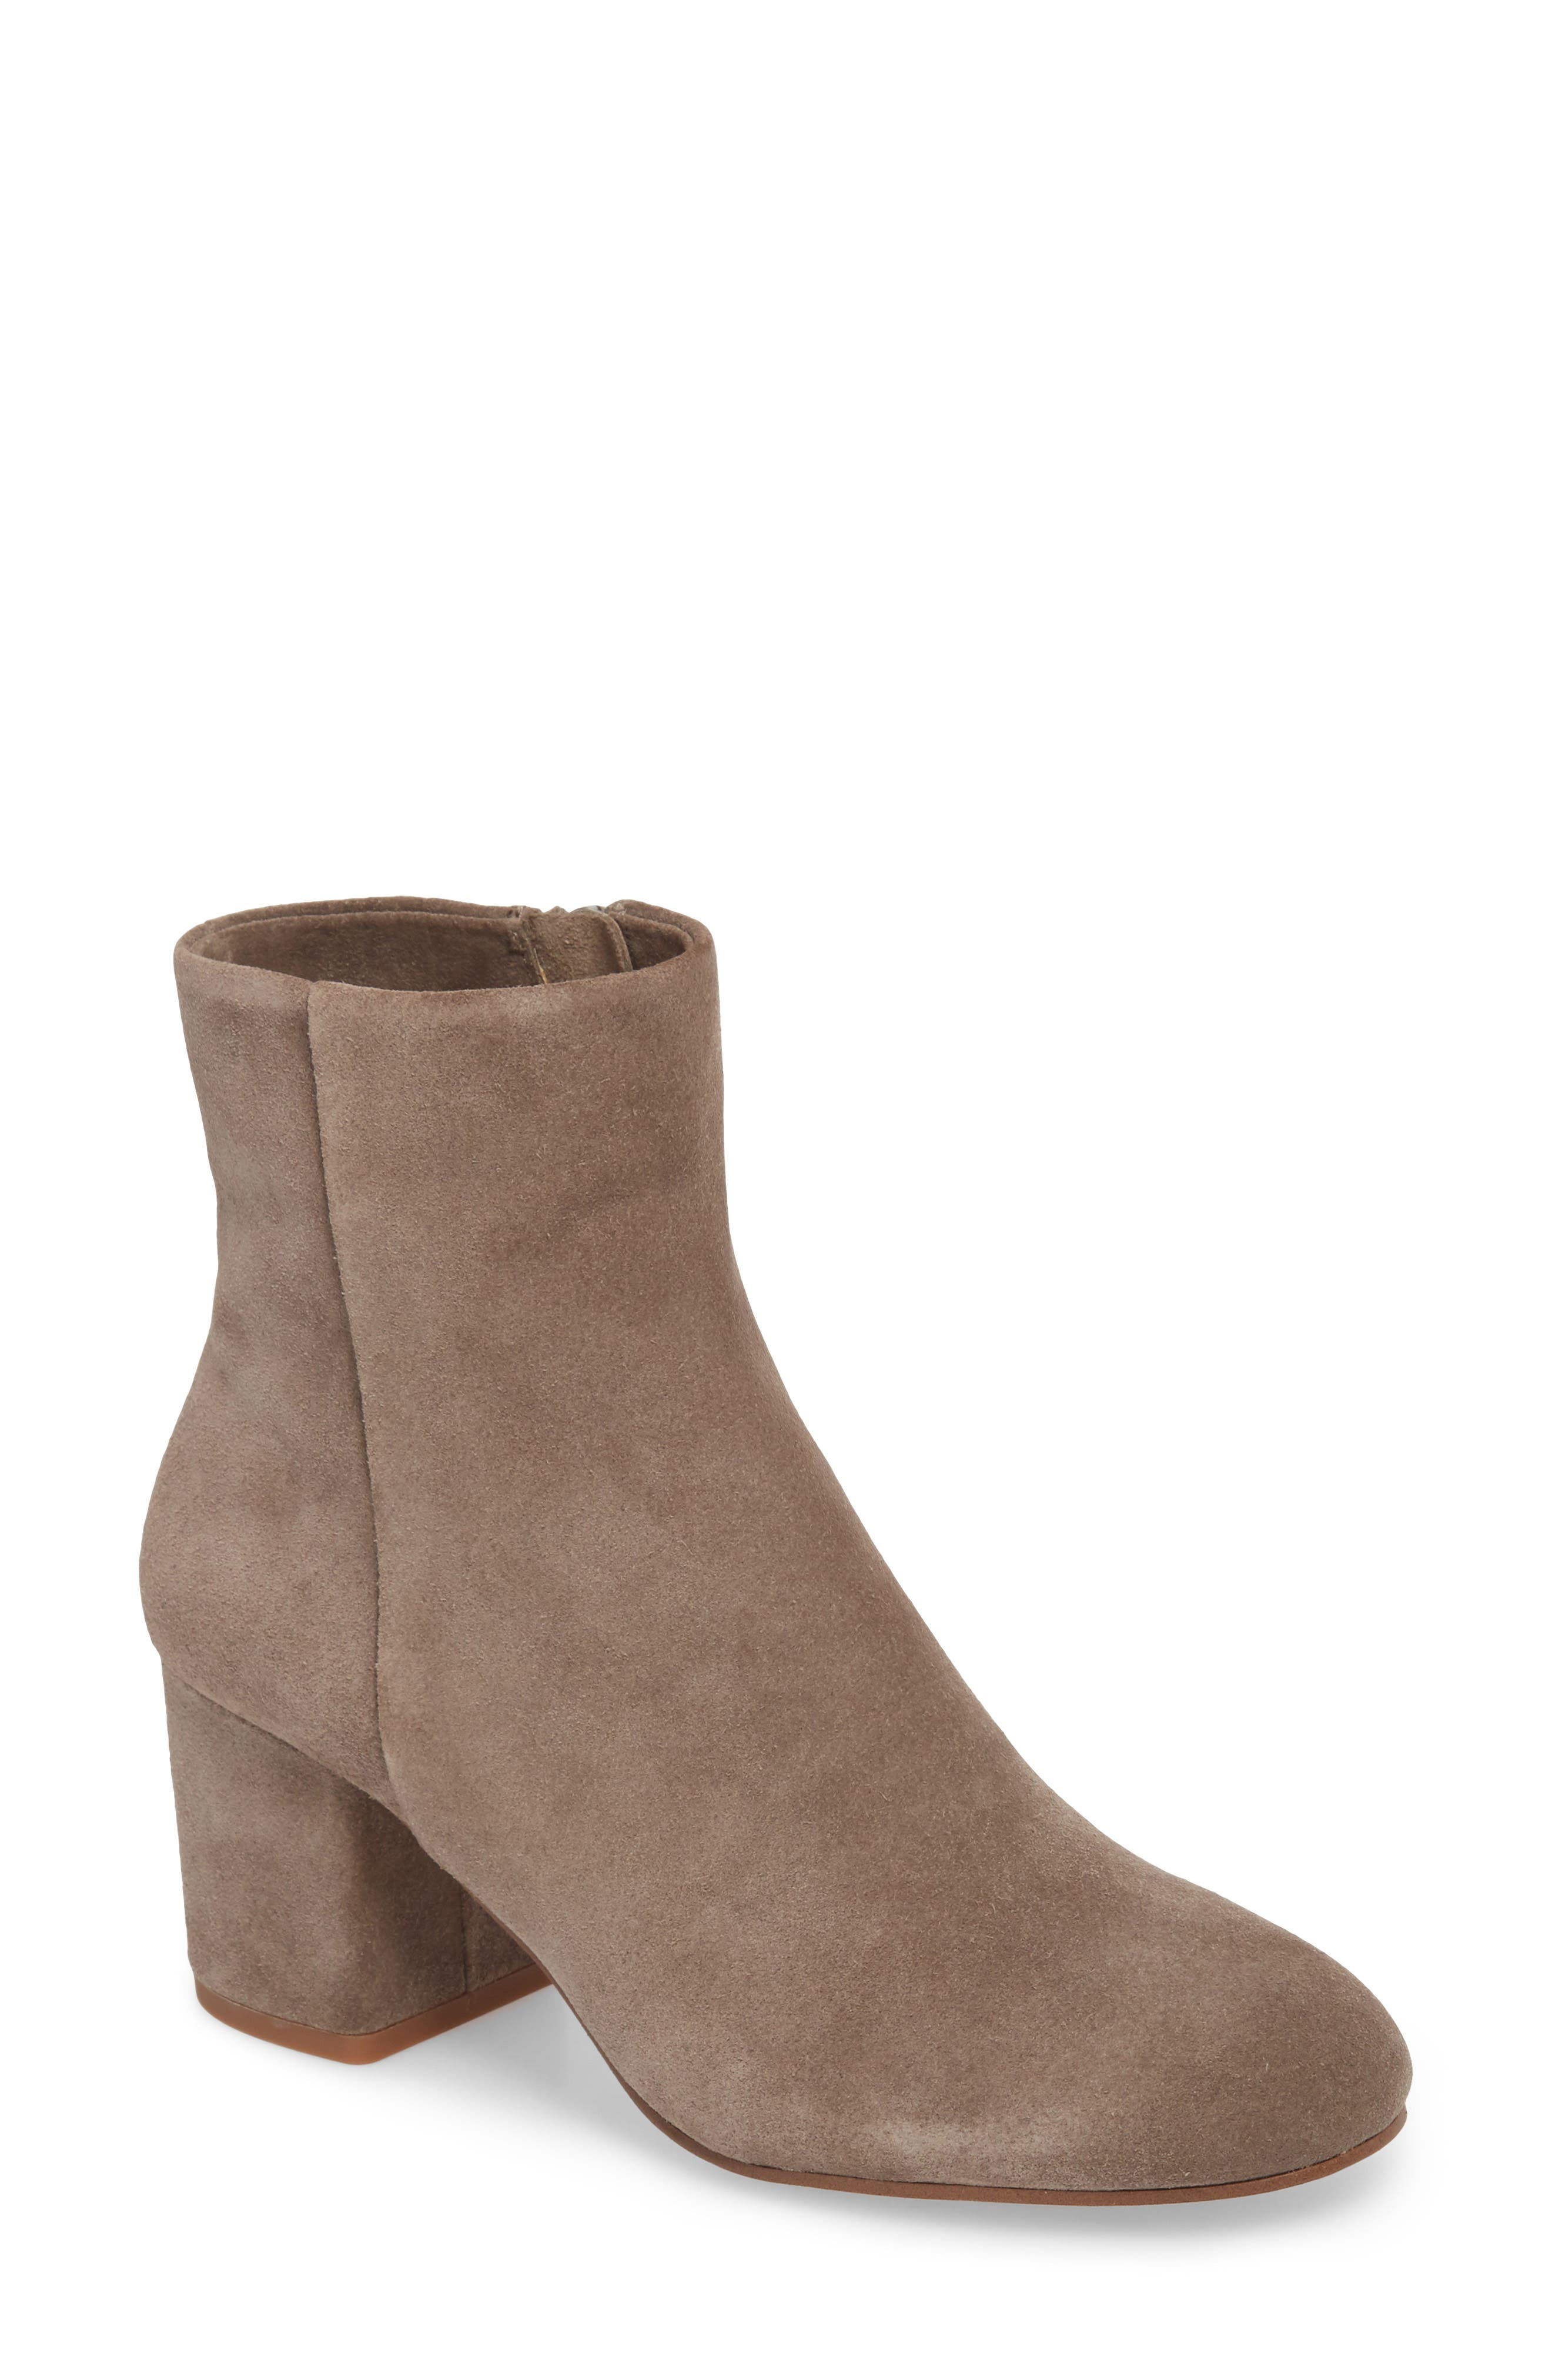 Nixie Bootie,                             Main thumbnail 1, color,                             LIGHT CHARCOAL SUEDE